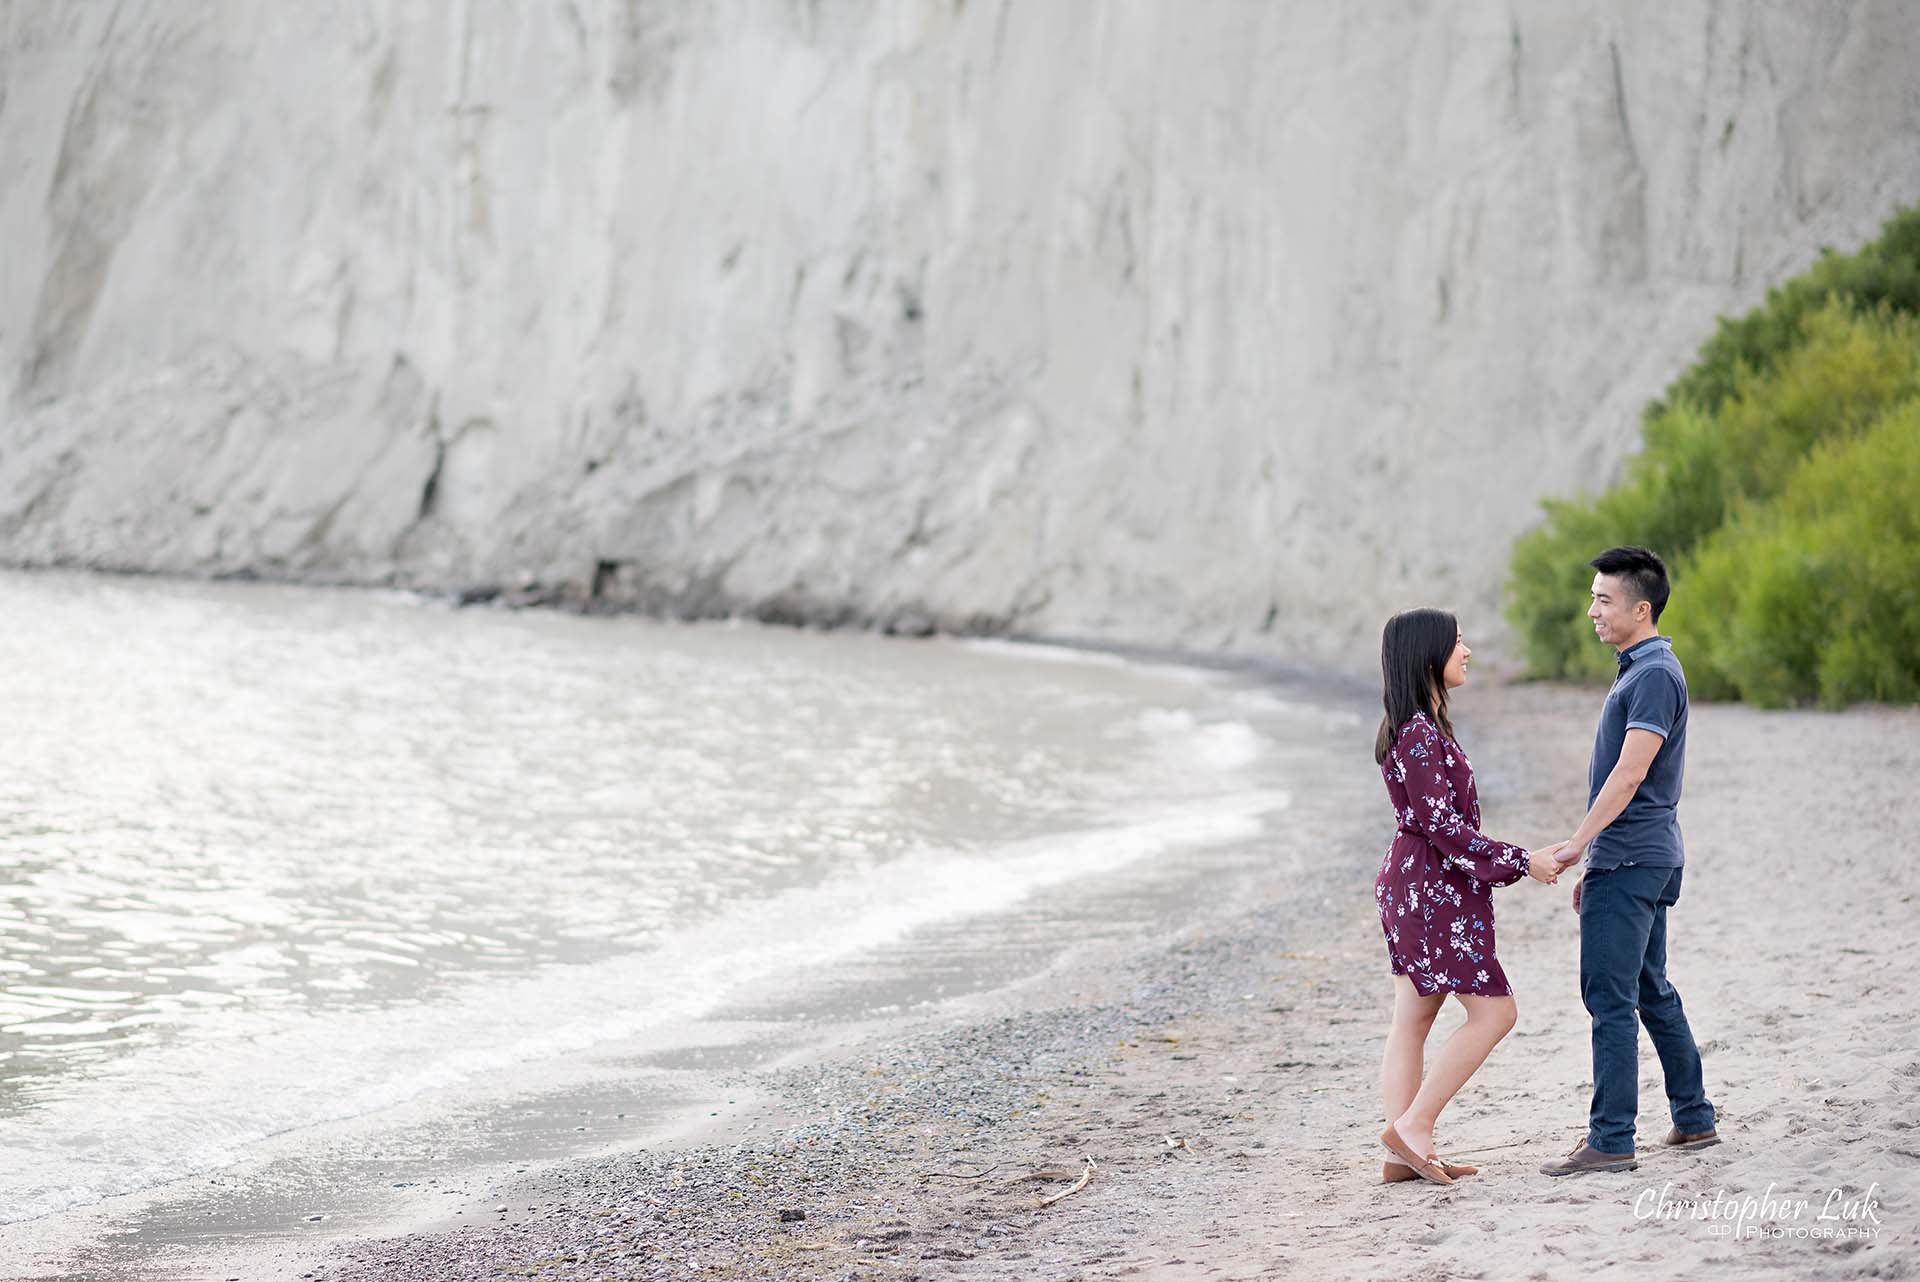 Christopher Luk Toronto Photographer Scarborough Bluffs Beach Park Sunset Surprise Wedding Marriage Engagement Proposal Candid Natural Photojournalistic Bride Groom Waterfront Water Lake Ontario Background Beachfront Sand Walking Together Holding Hands Edge of Water